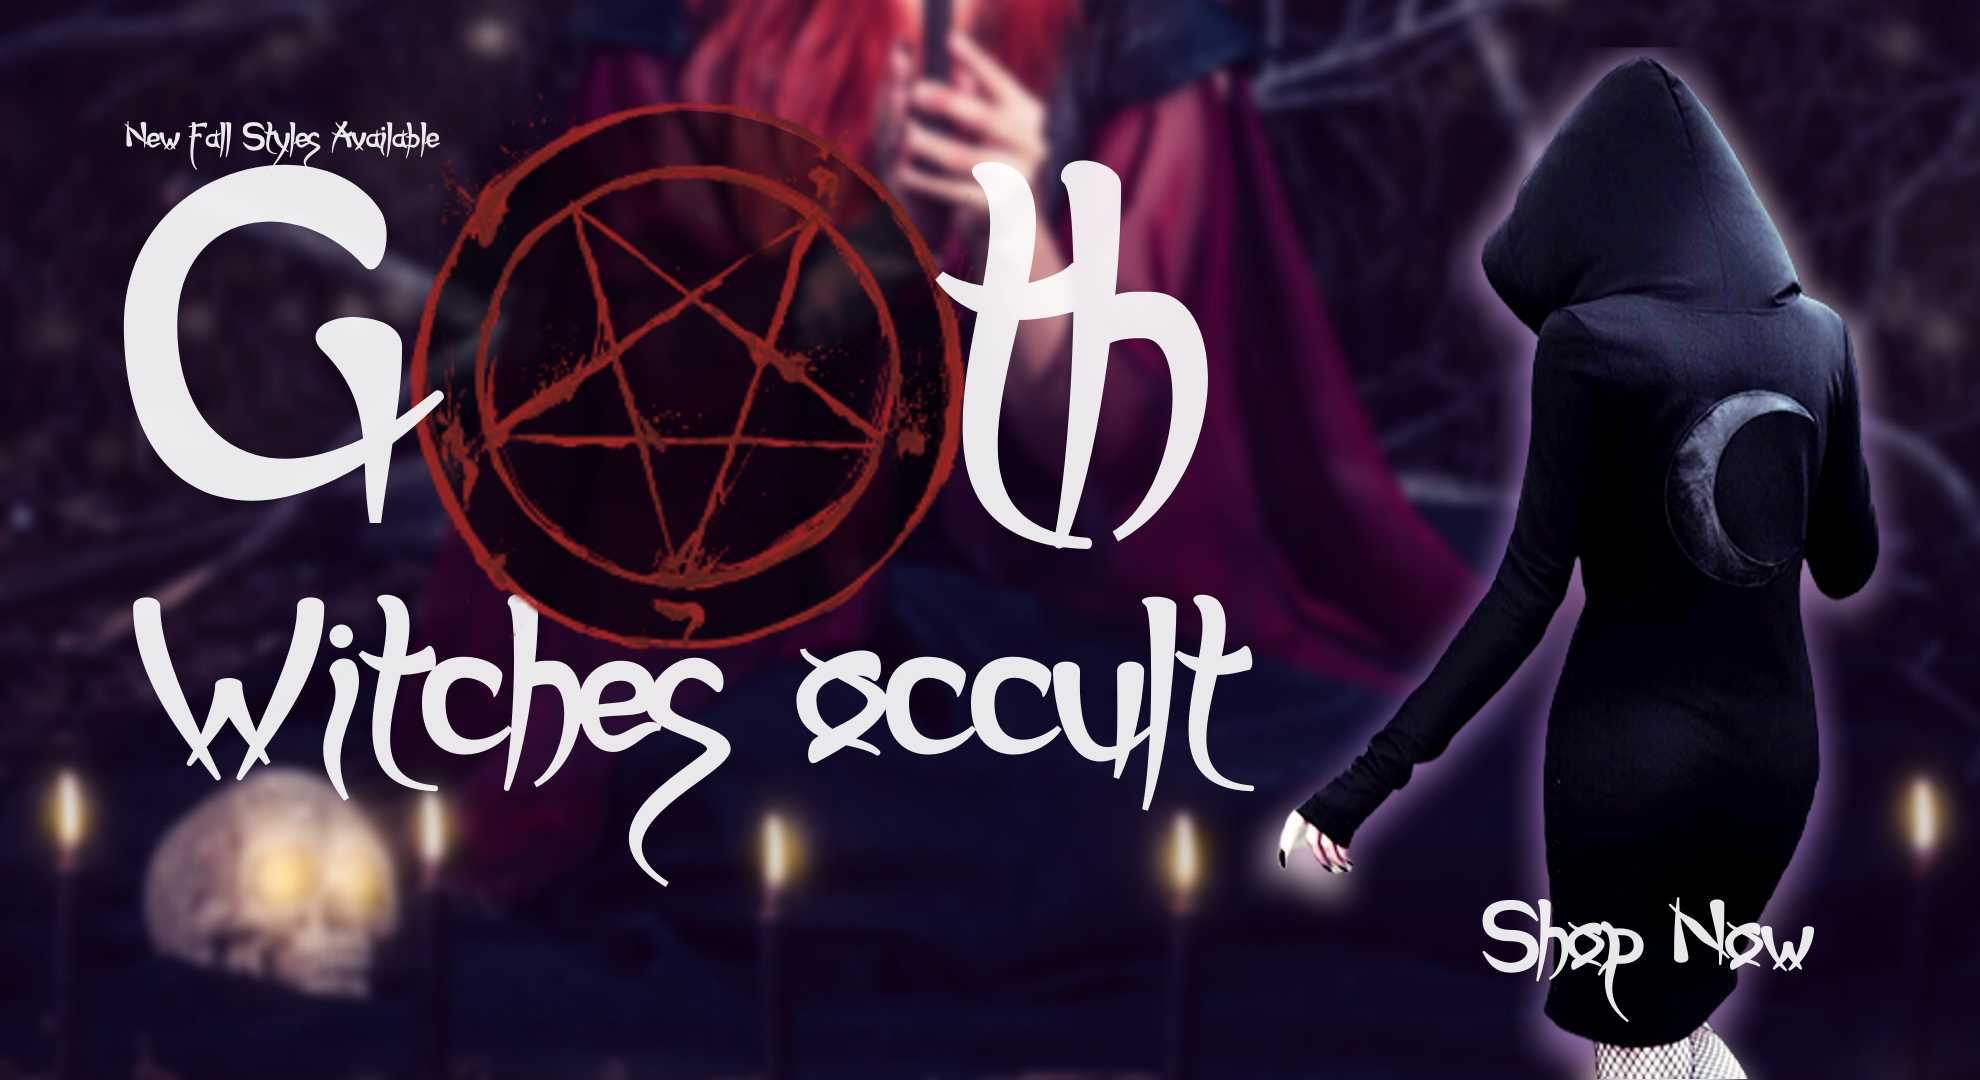 Goth Clothing Witches Occult Subculture Clothing online Neon Underground Apparel